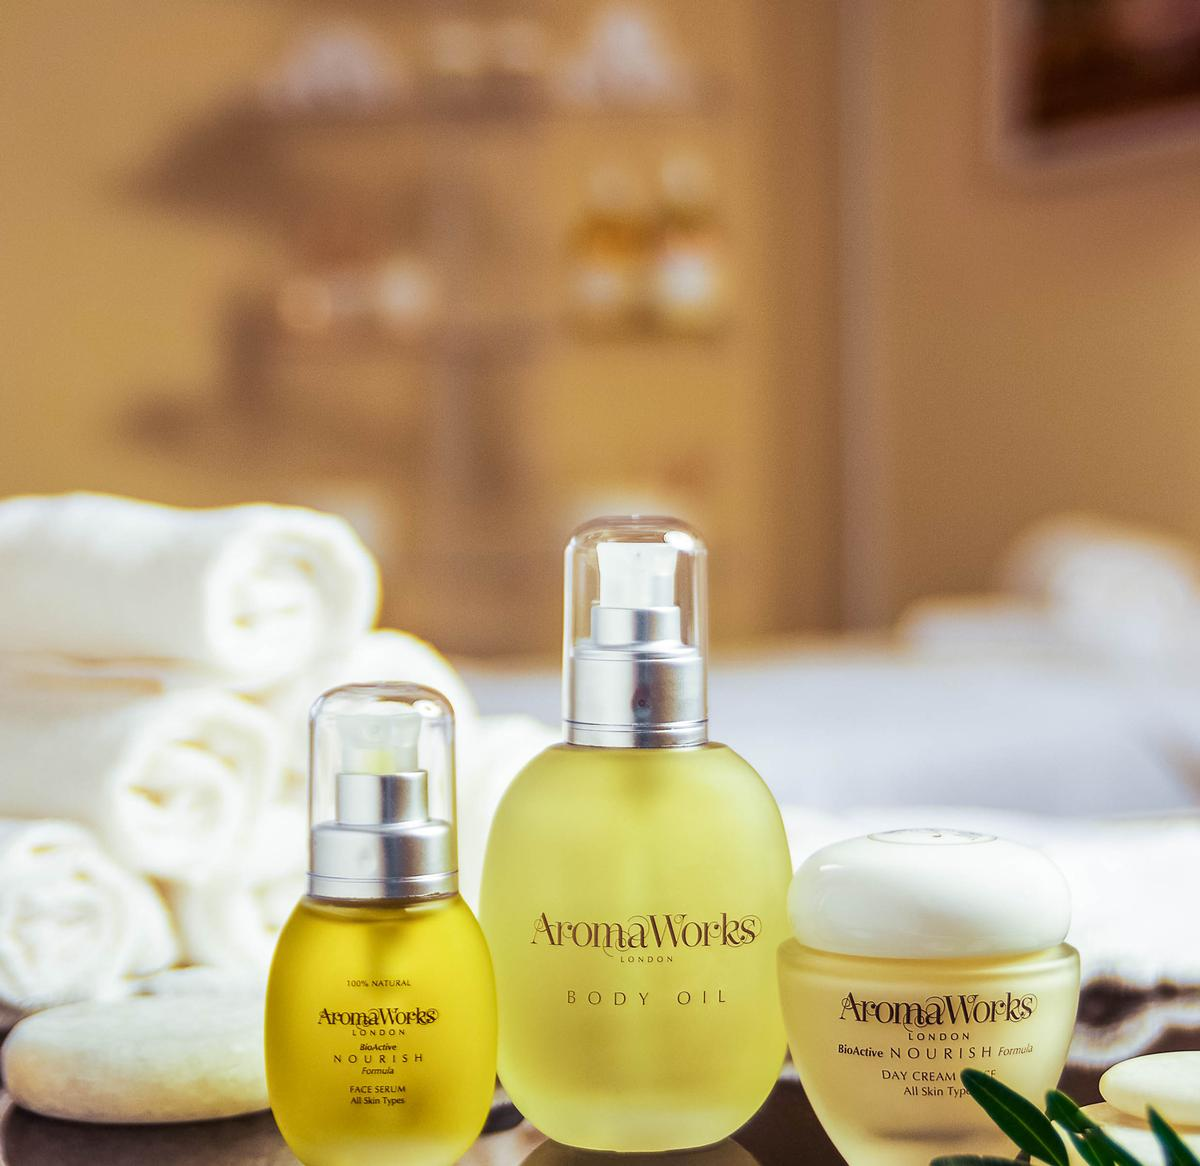 The full range of AromaWorks treatments will be available within the spa, as well as waxing and nail treatments